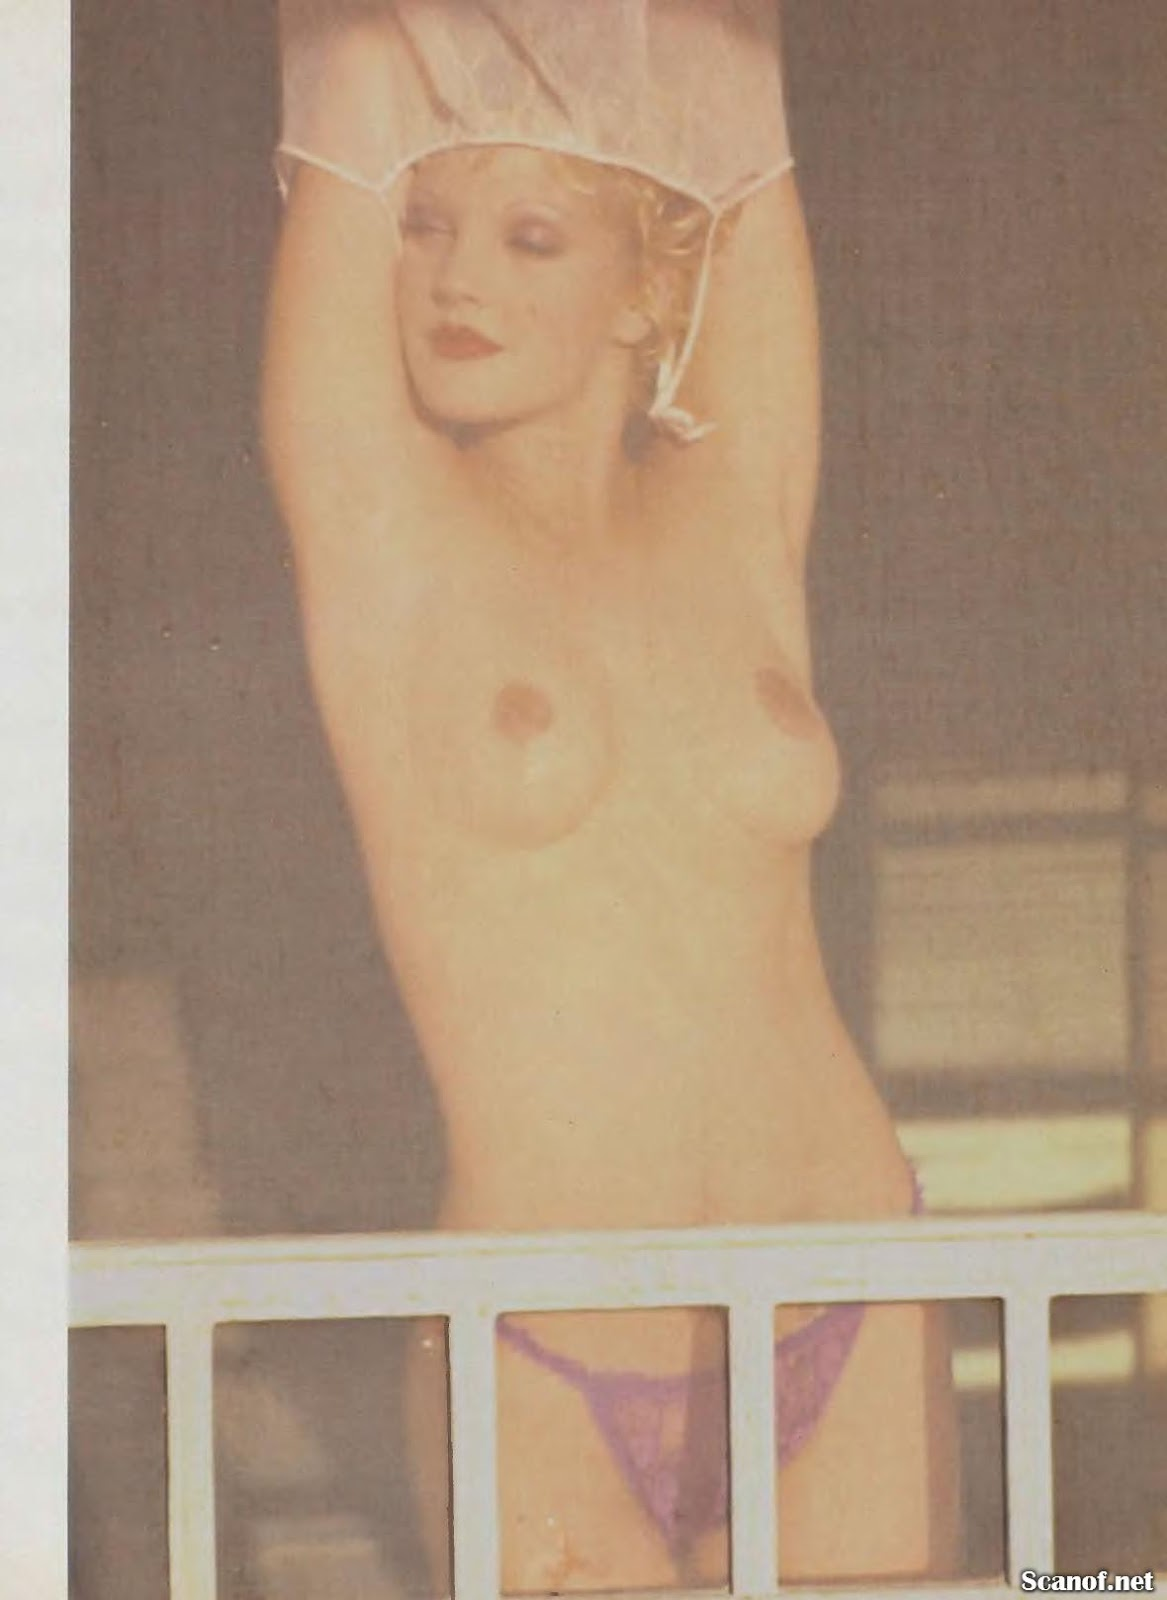 Commit Drew barrymore pussy pics remarkable